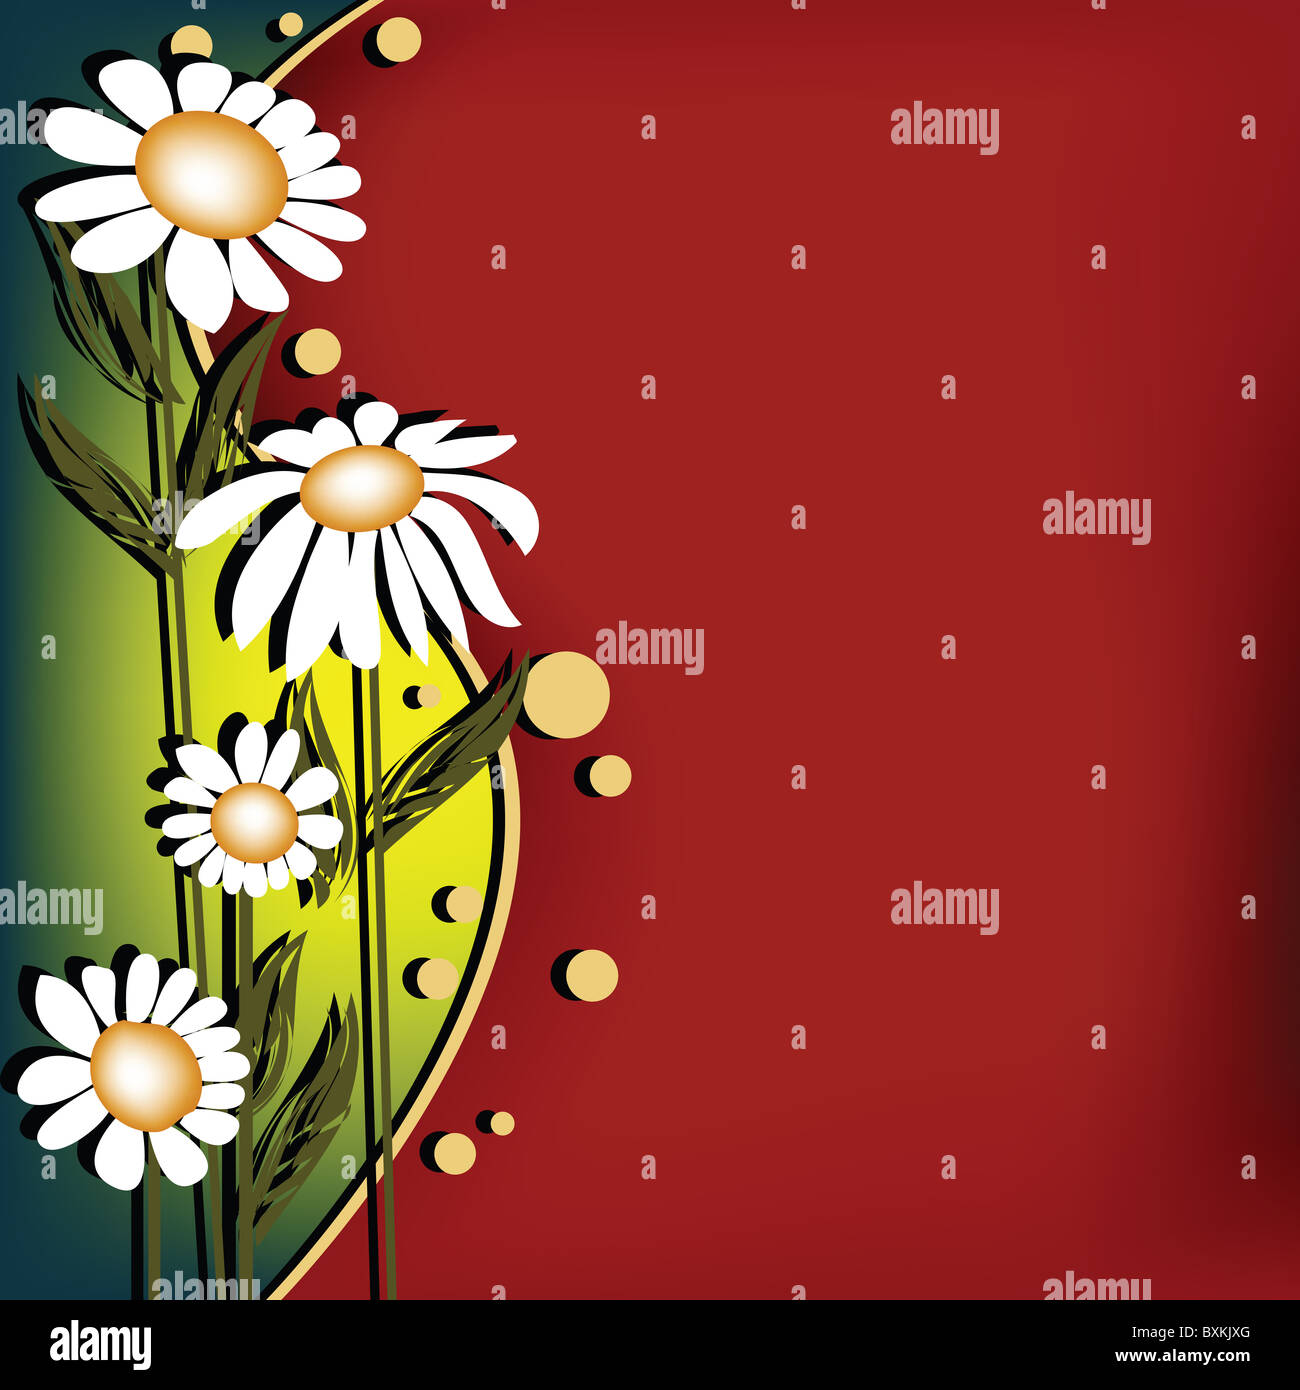 Floral card - Stock Image